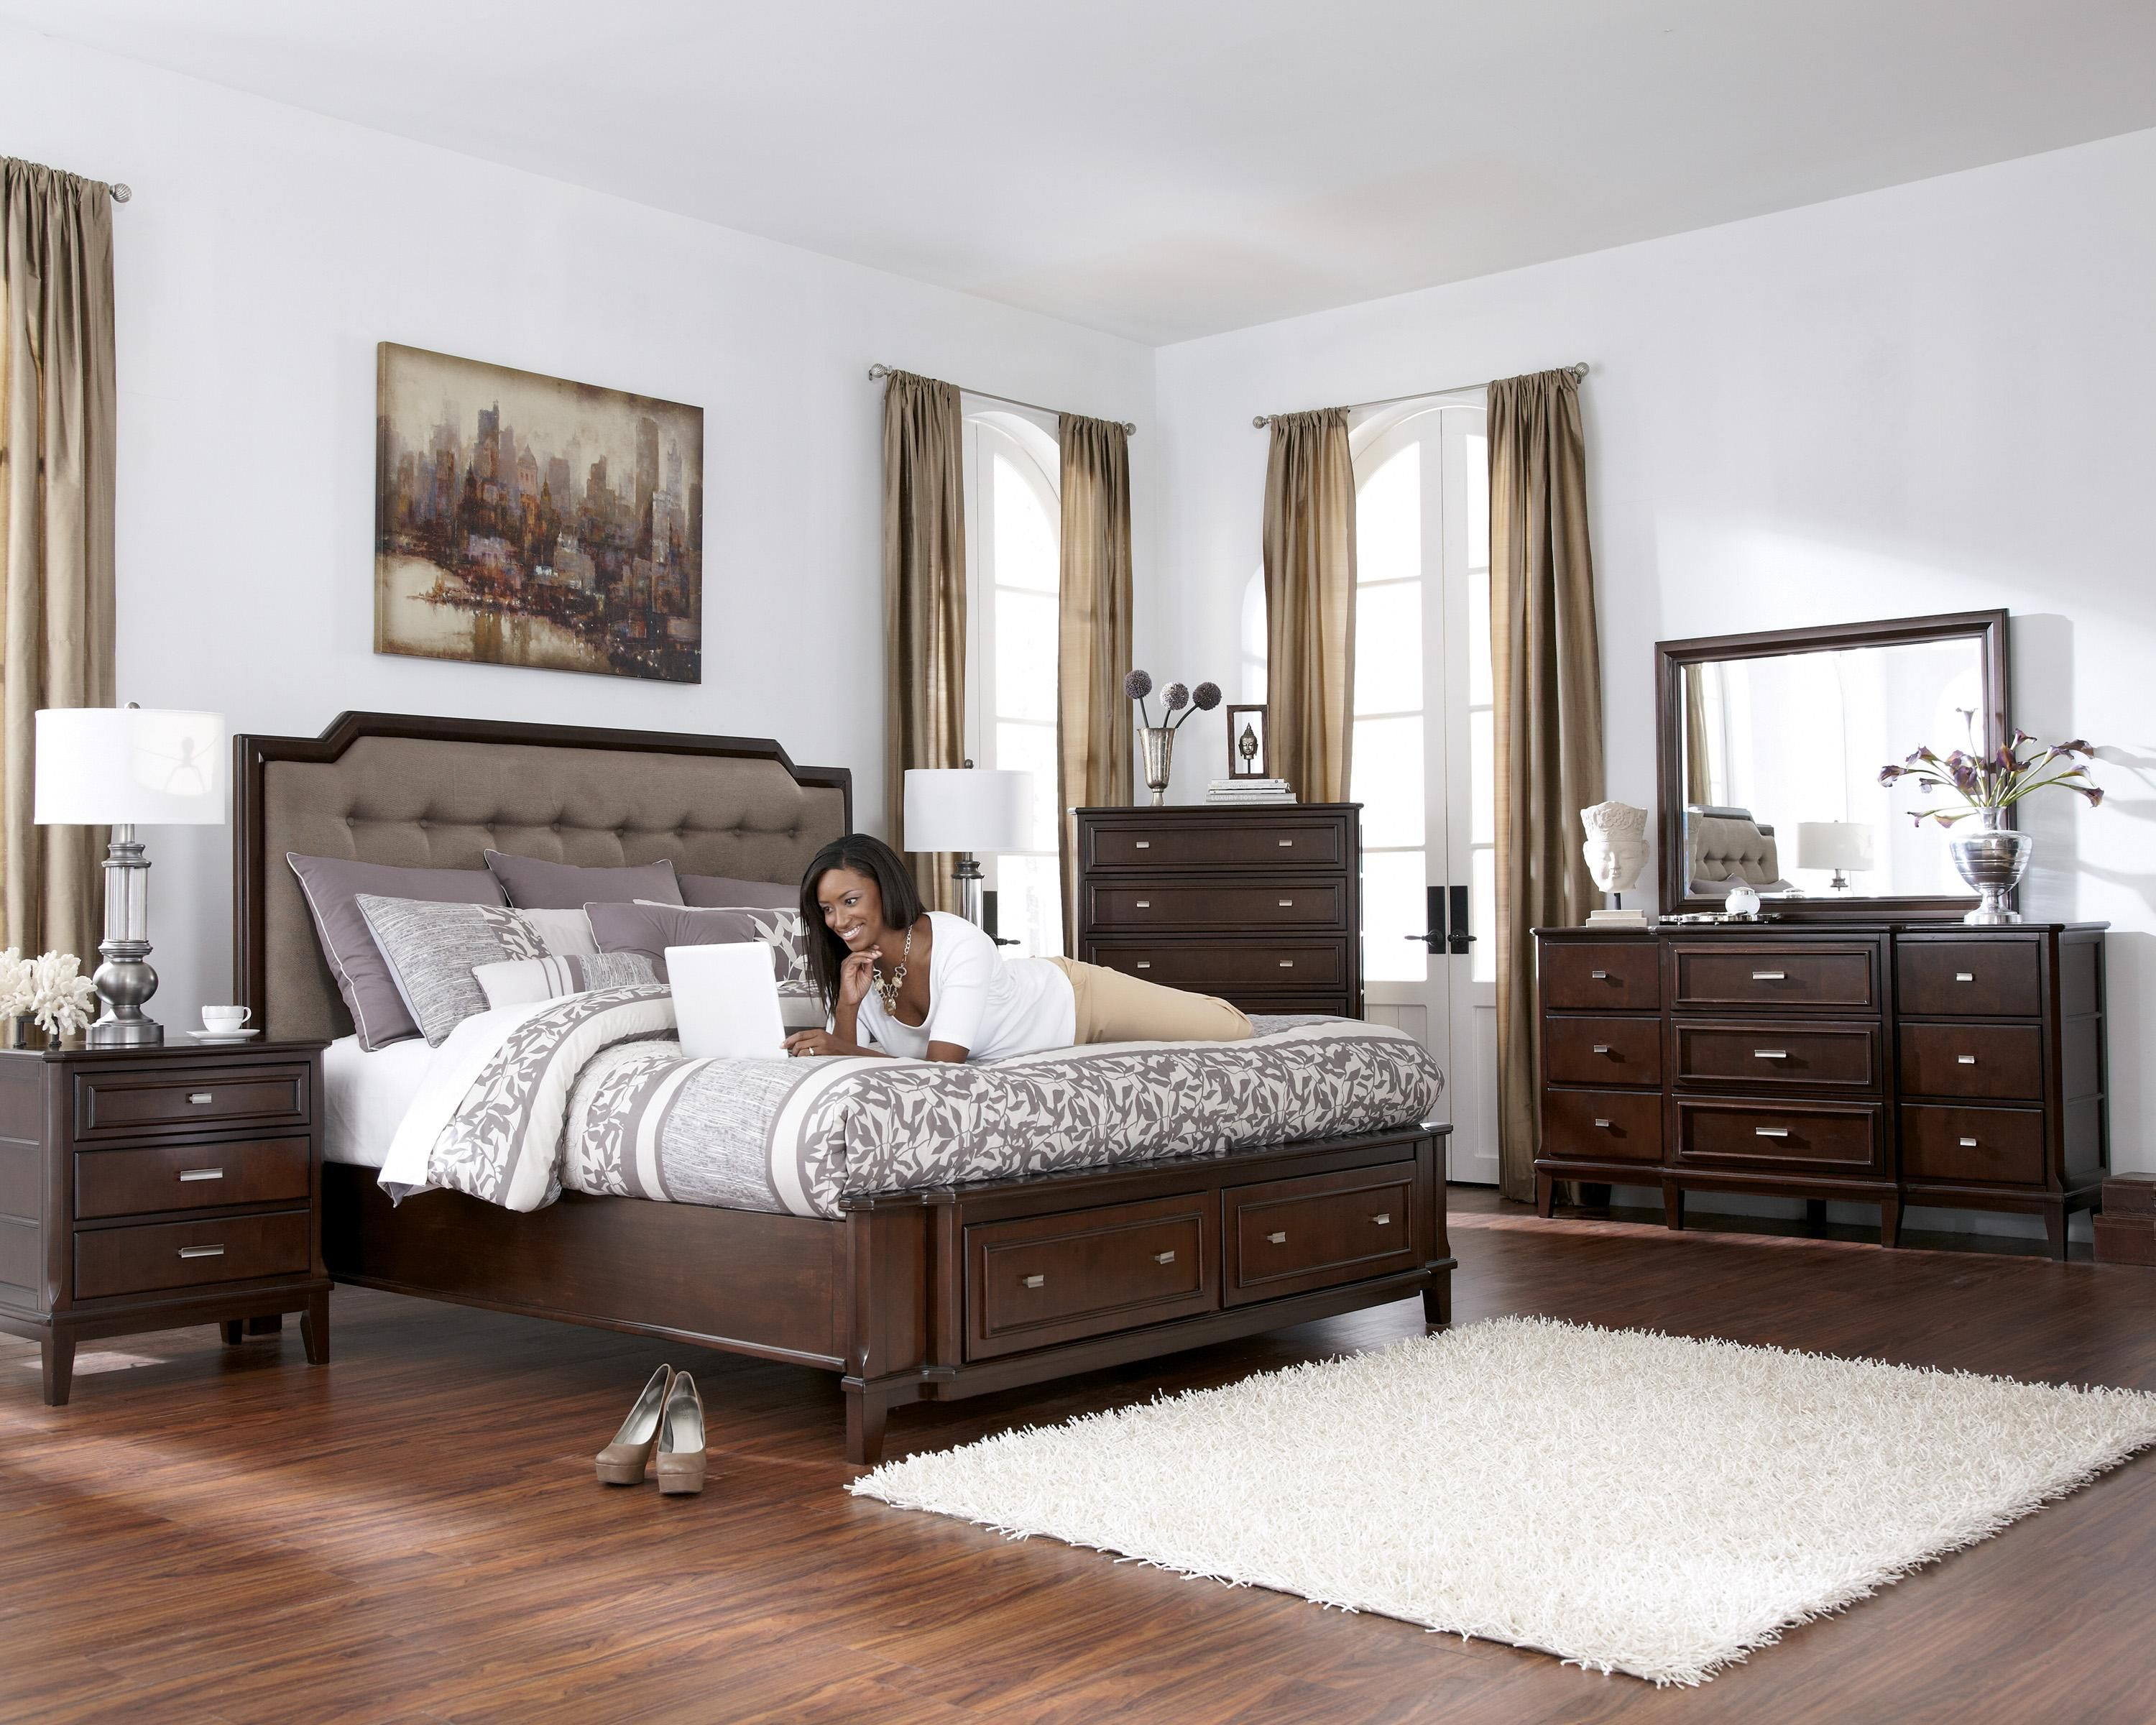 Taft Furniture Bedroom Sets Larimer Upholstered Headboard Bedroom Set With Button Tufting In